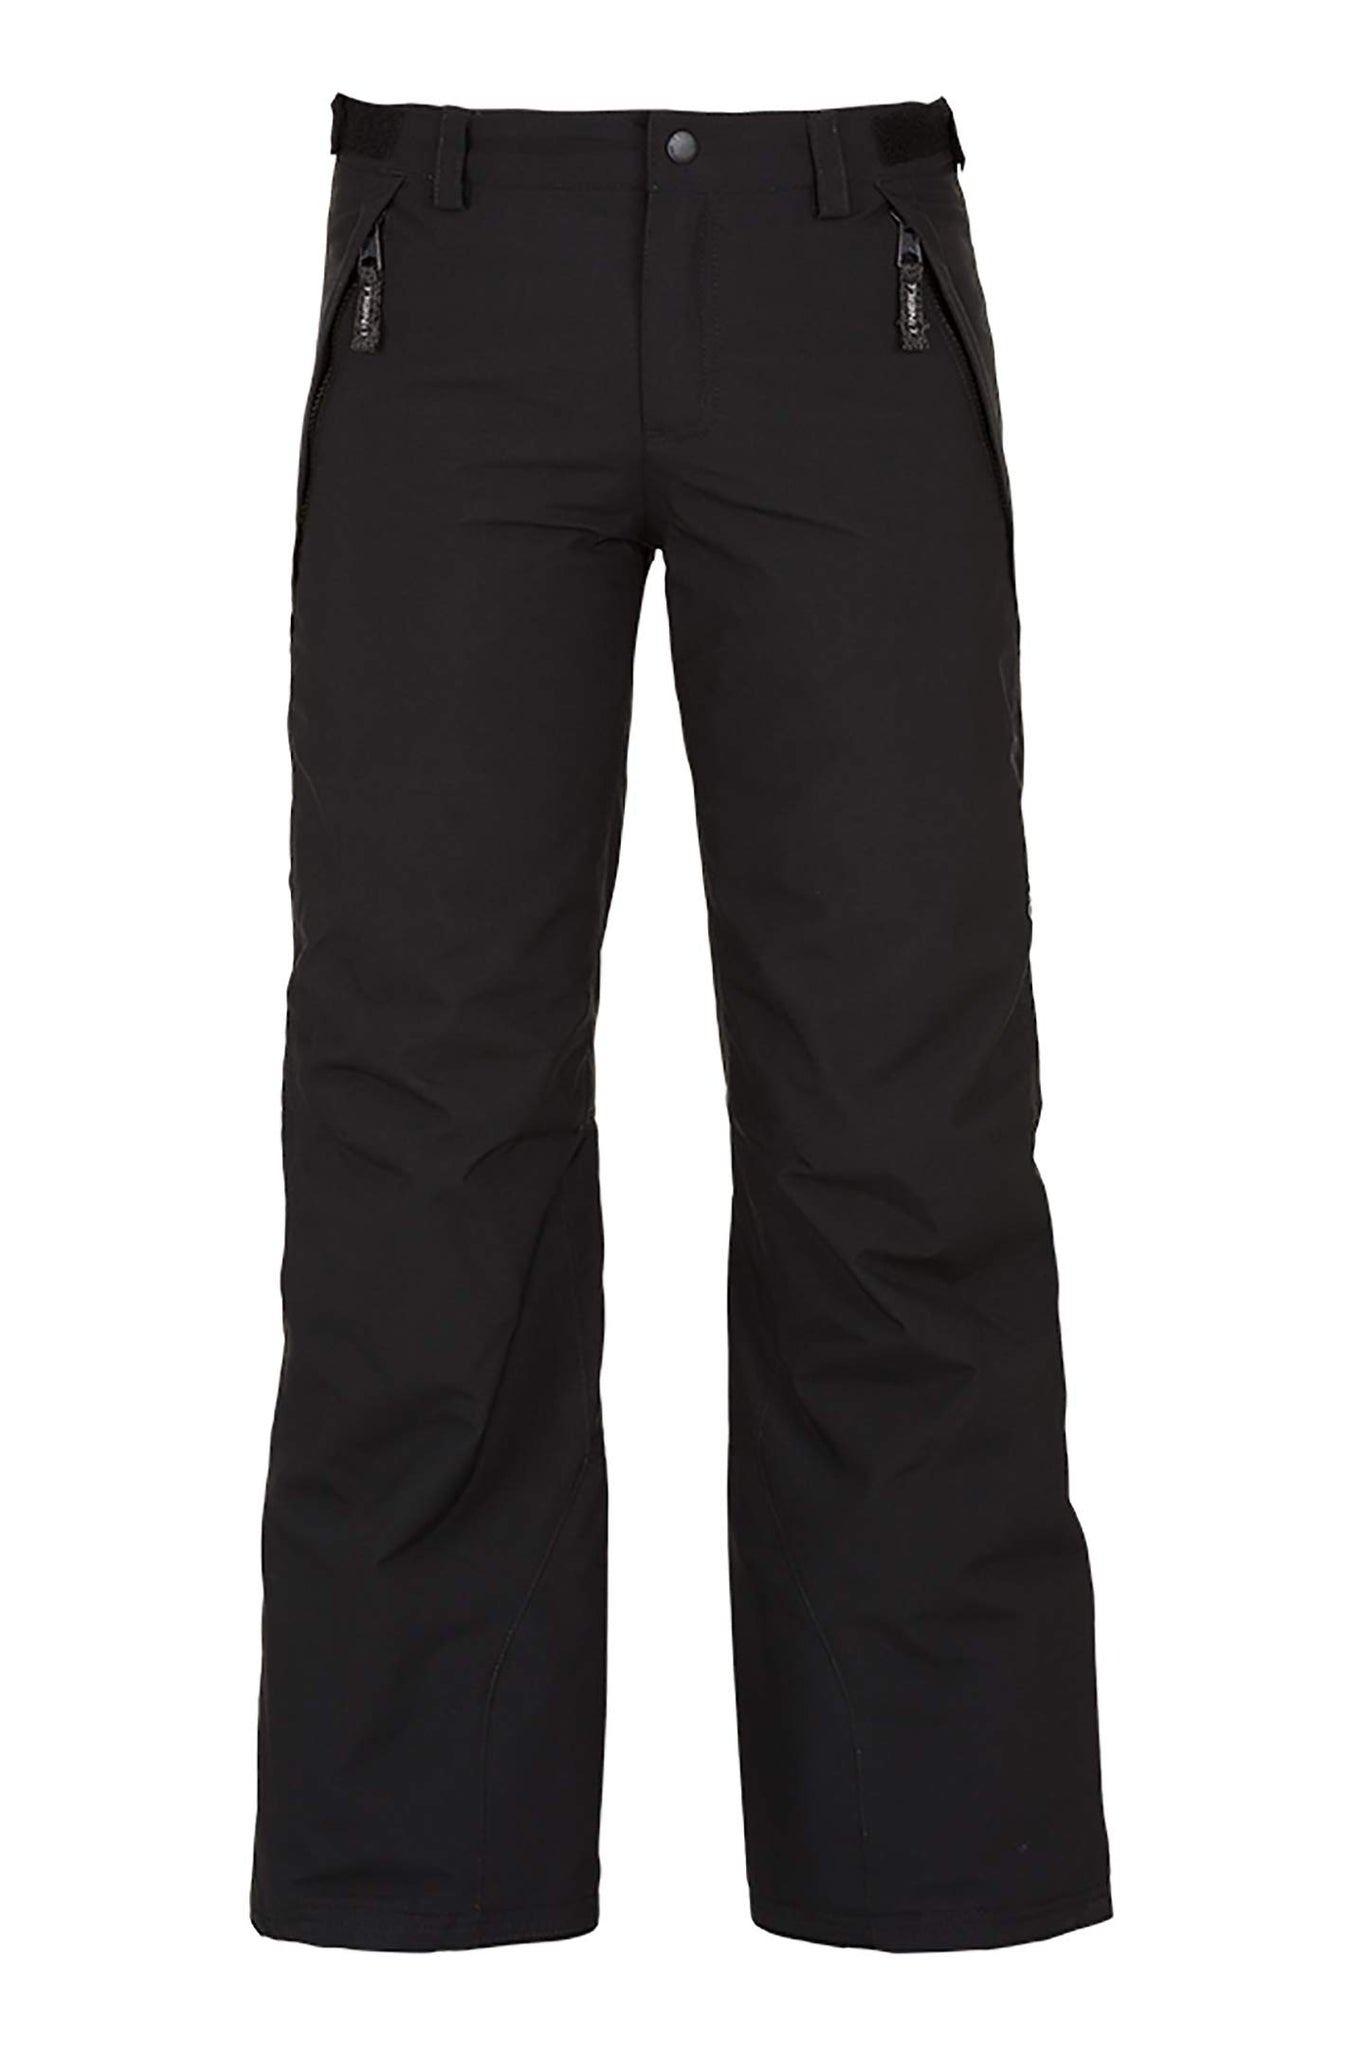 BOYS ANVIL SNOW PANTS